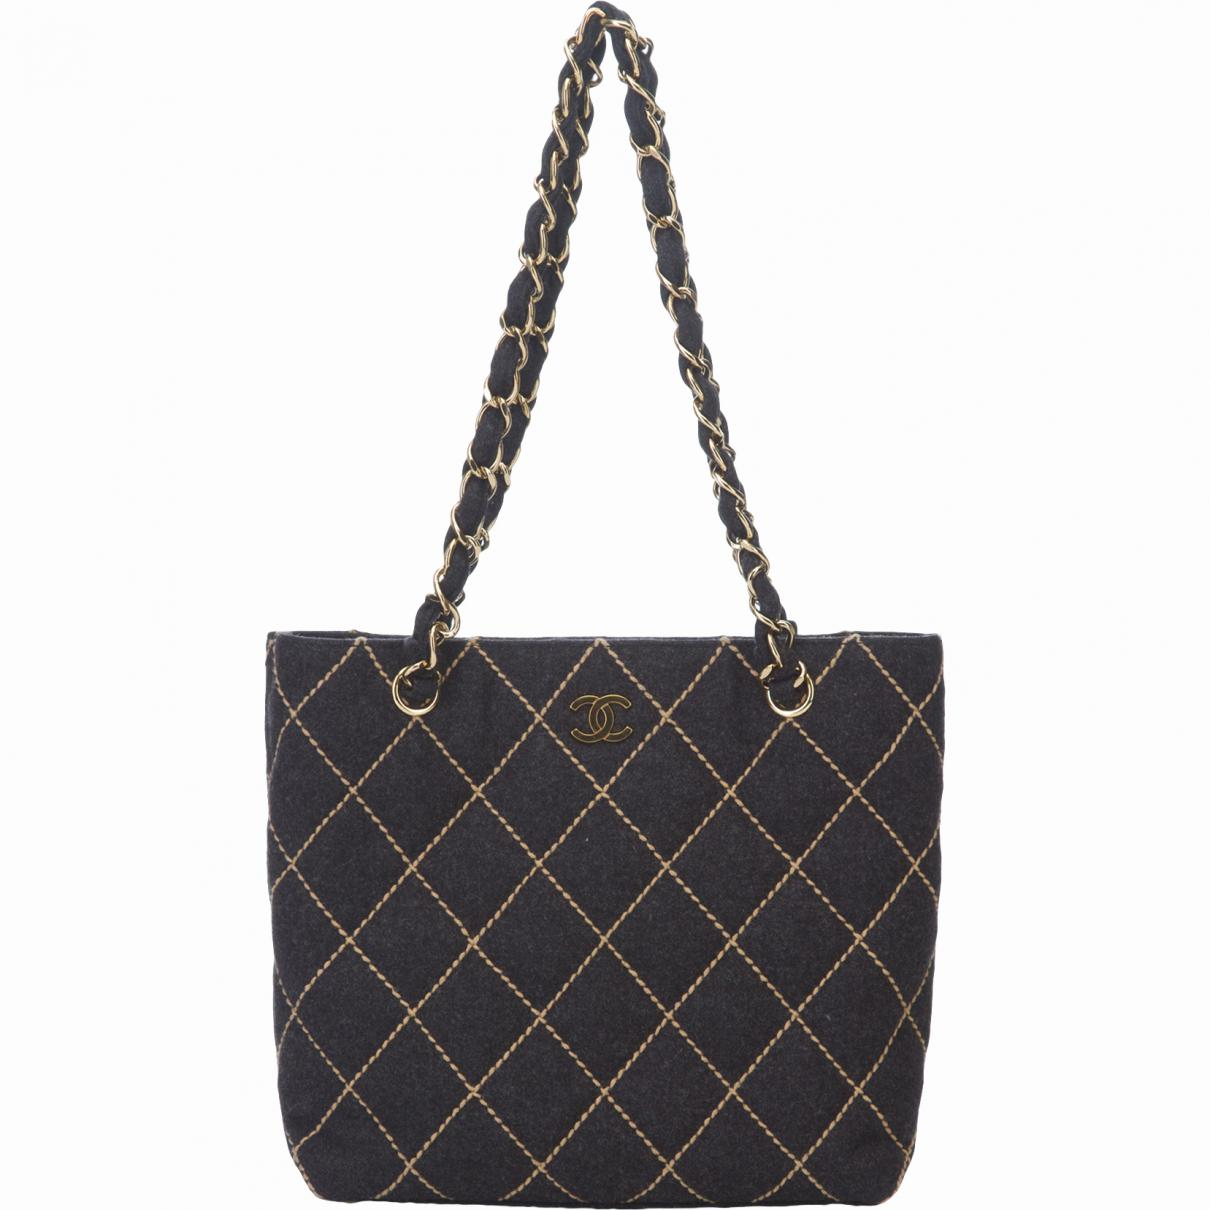 bba78320f86d Chanel Pre-owned Vintage Grey Wool Handbags in Gray - Lyst